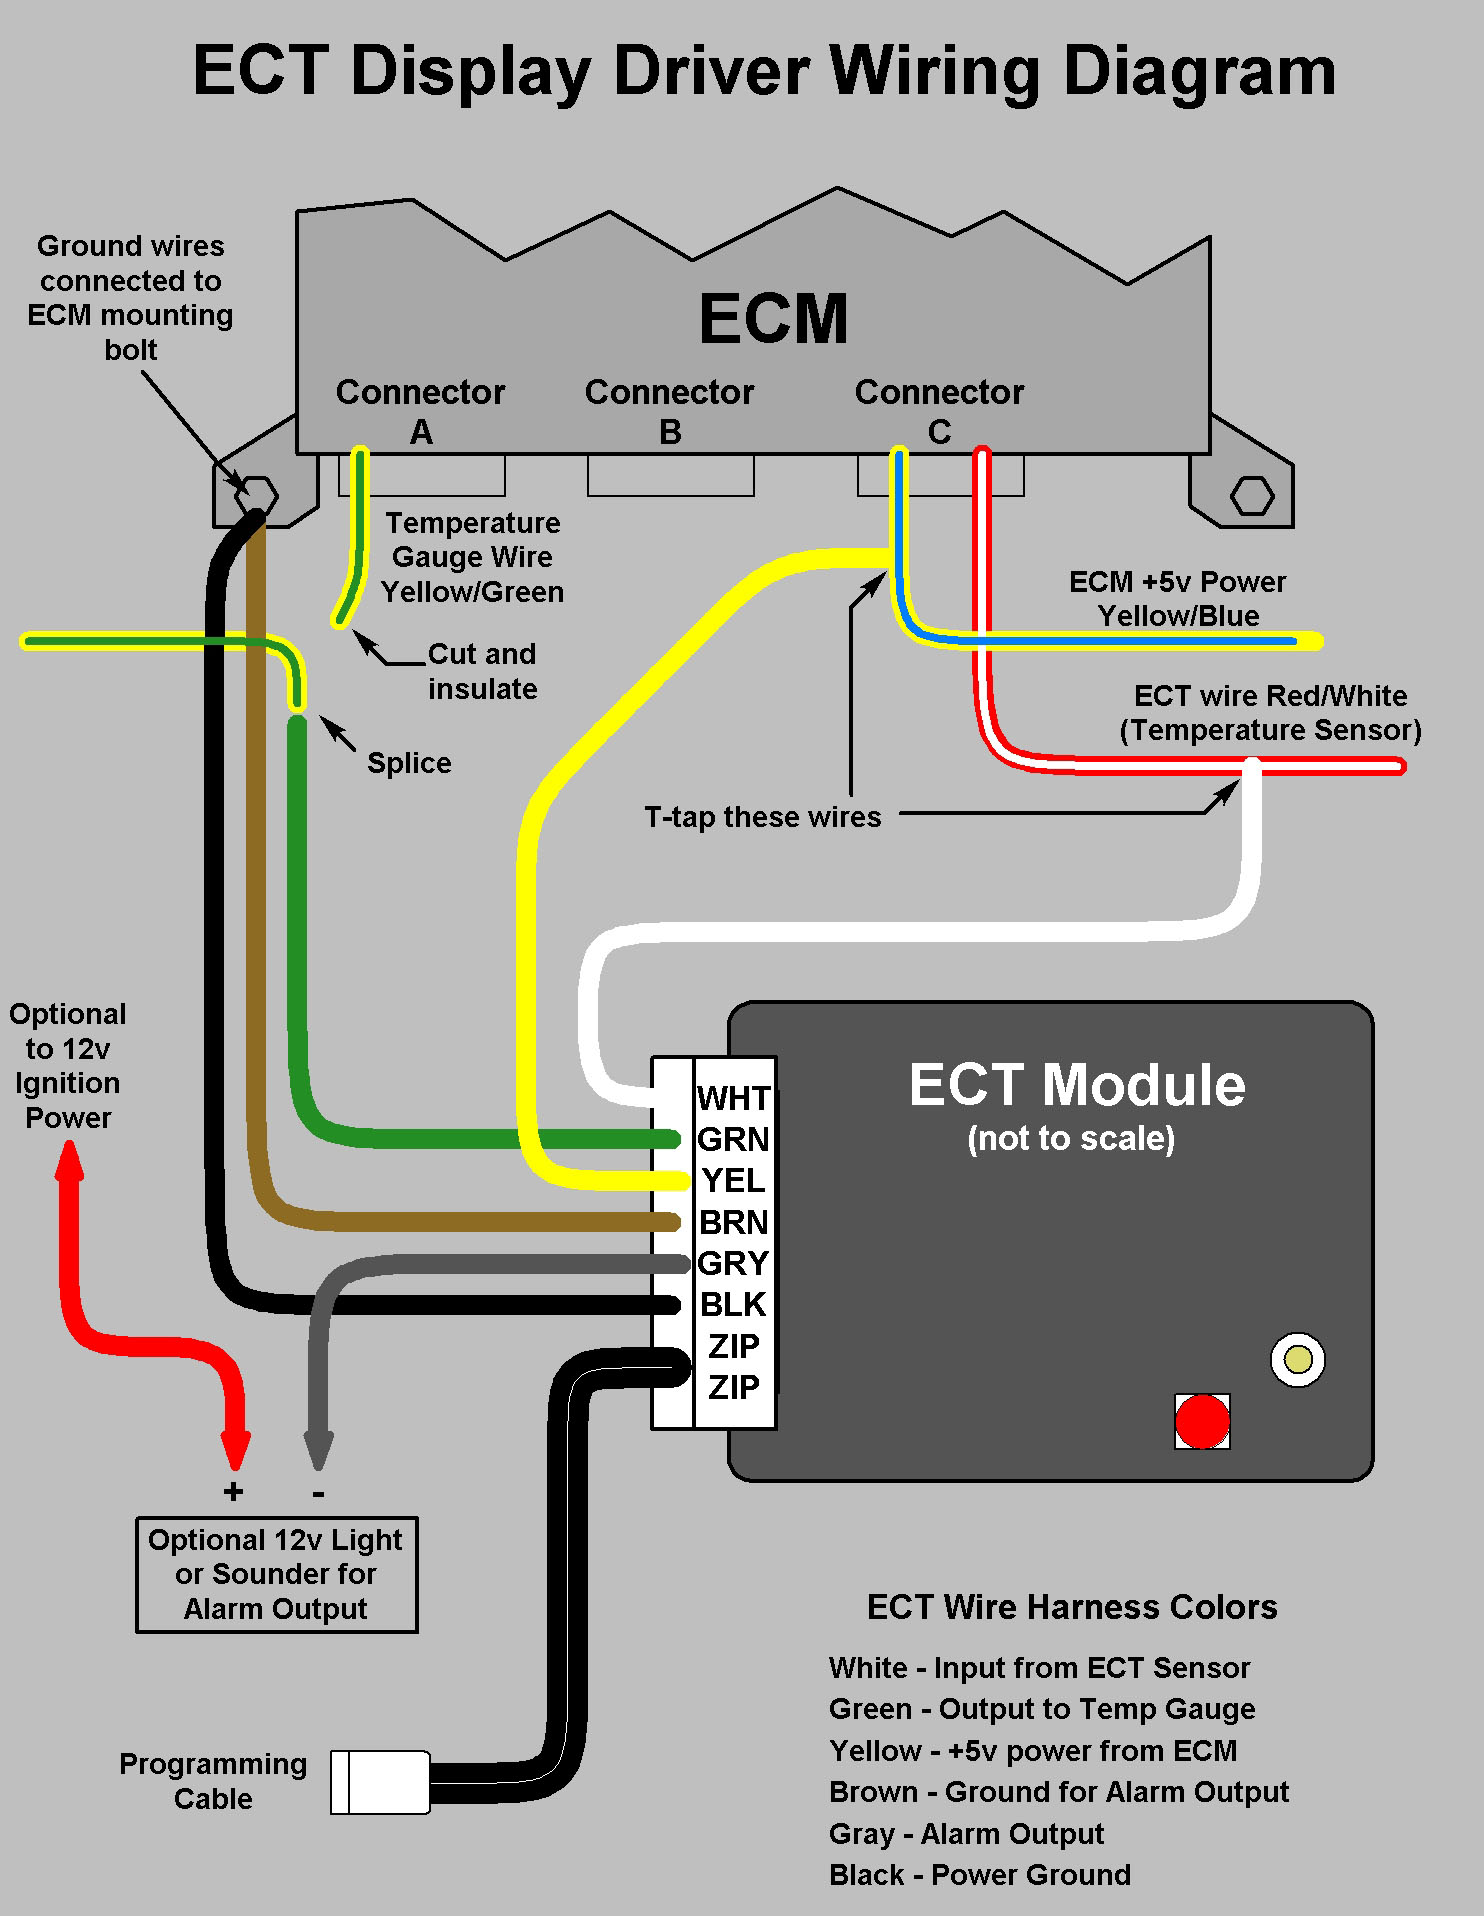 ECT wiring diagram aem ems 4 wiring diagram aem ems fox body mustangs \u2022 free wiring ems stinger wiring diagram at virtualis.co